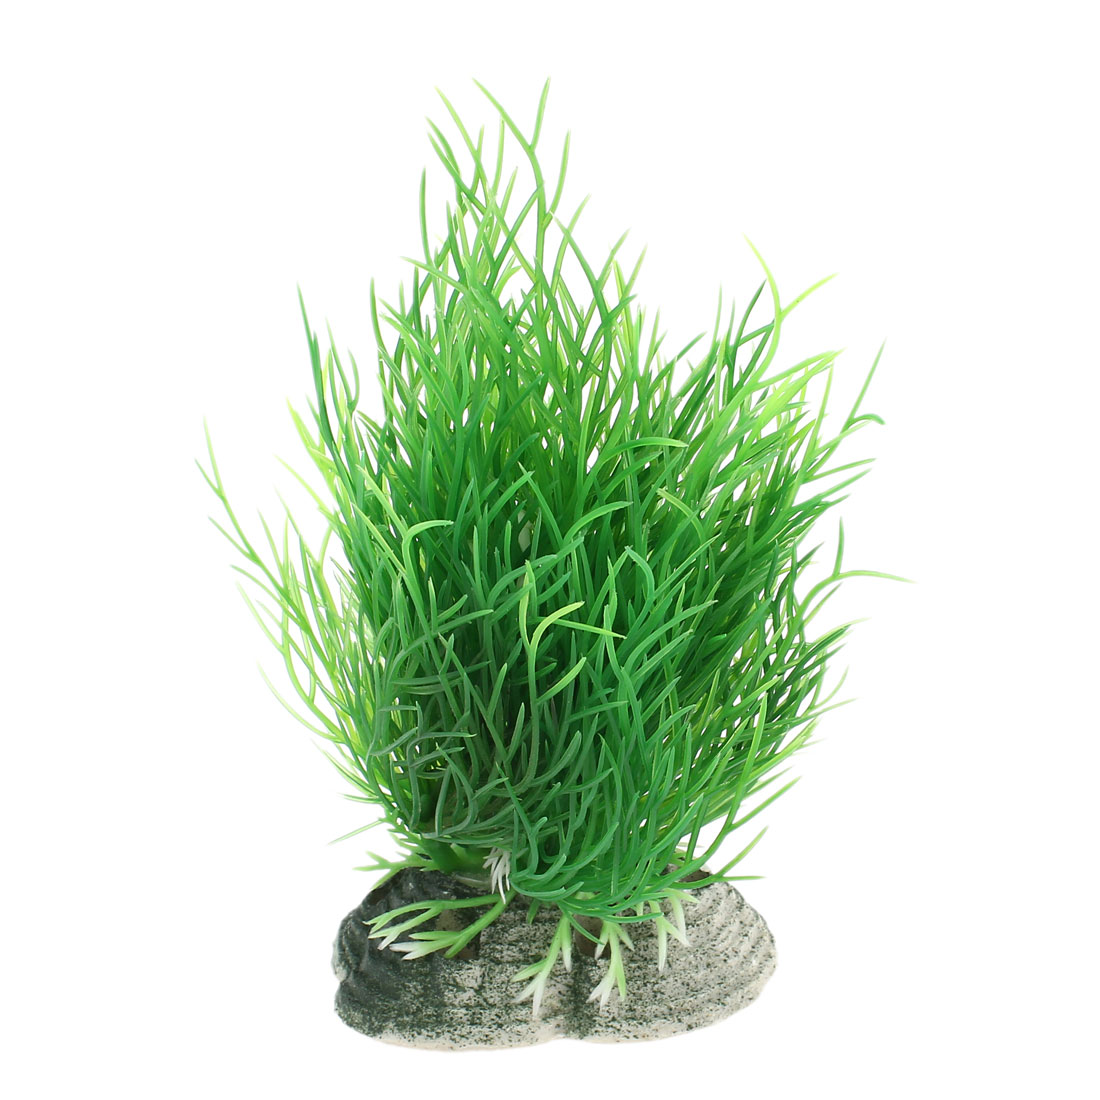 "4.3"" Height Artificial Plastic Green Water Plant Decor for Aquarium"